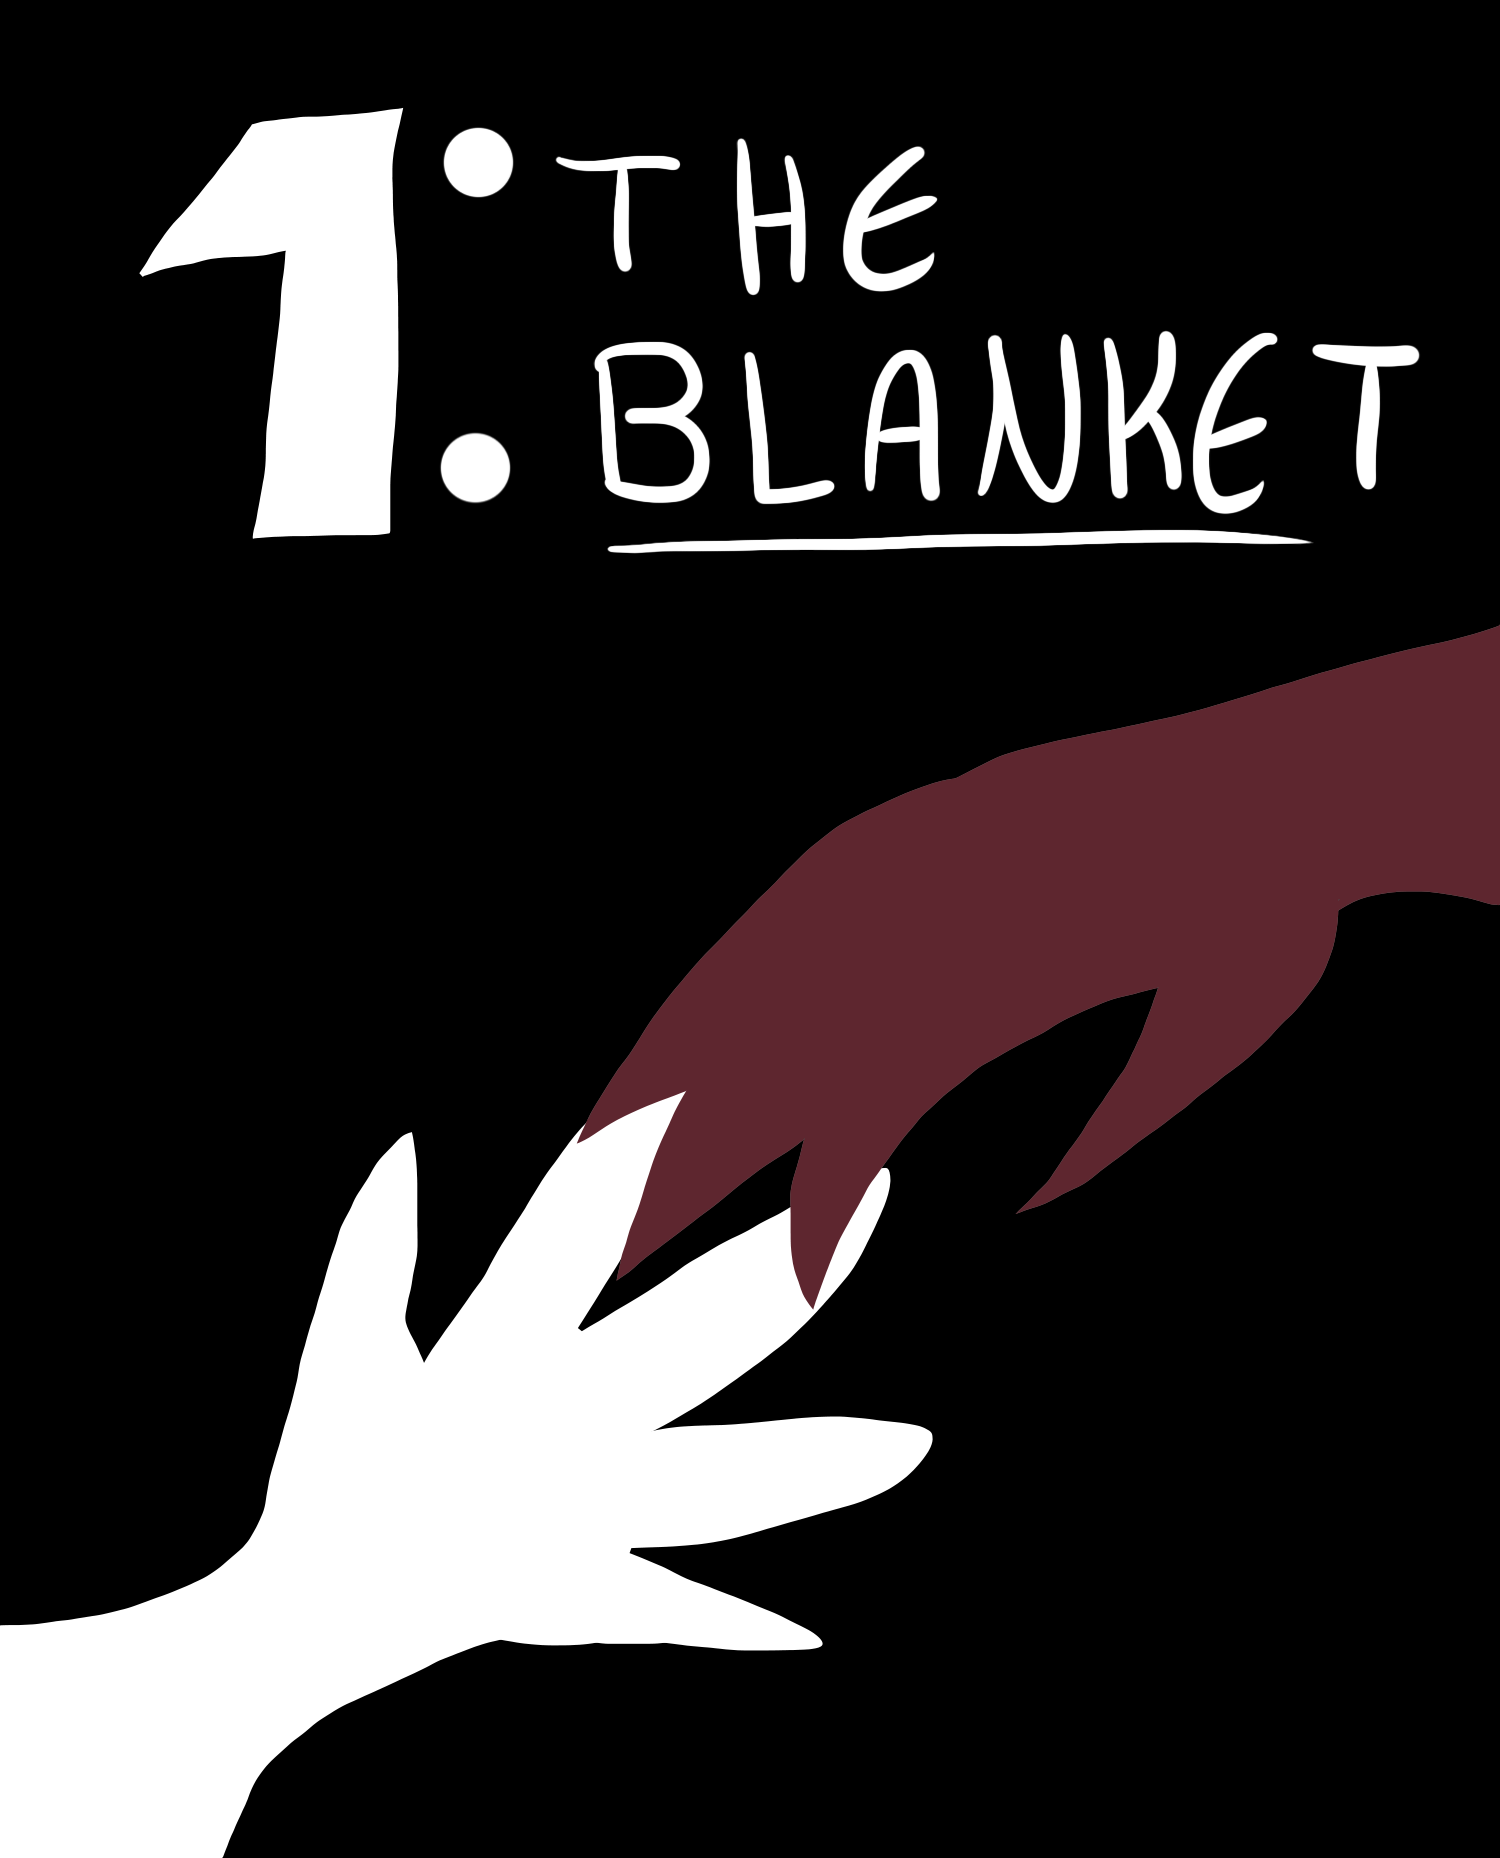 The Blanket Coverpage